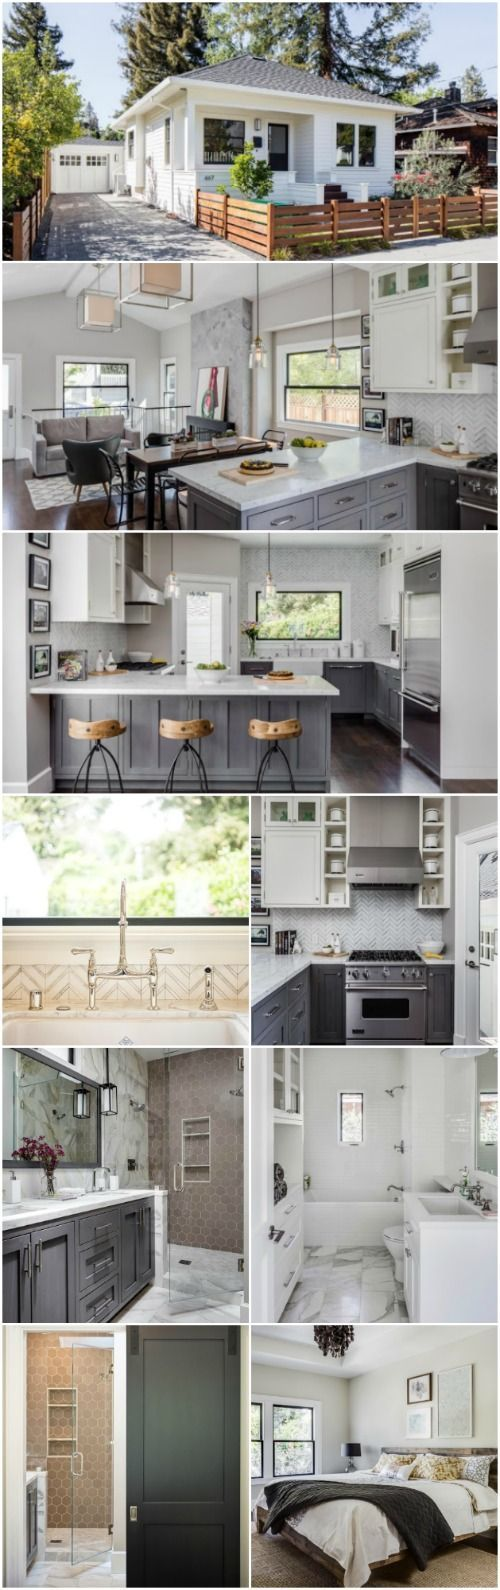 Tiny House Interior Plans best 25+ tiny house design ideas on pinterest | tiny houses, tiny